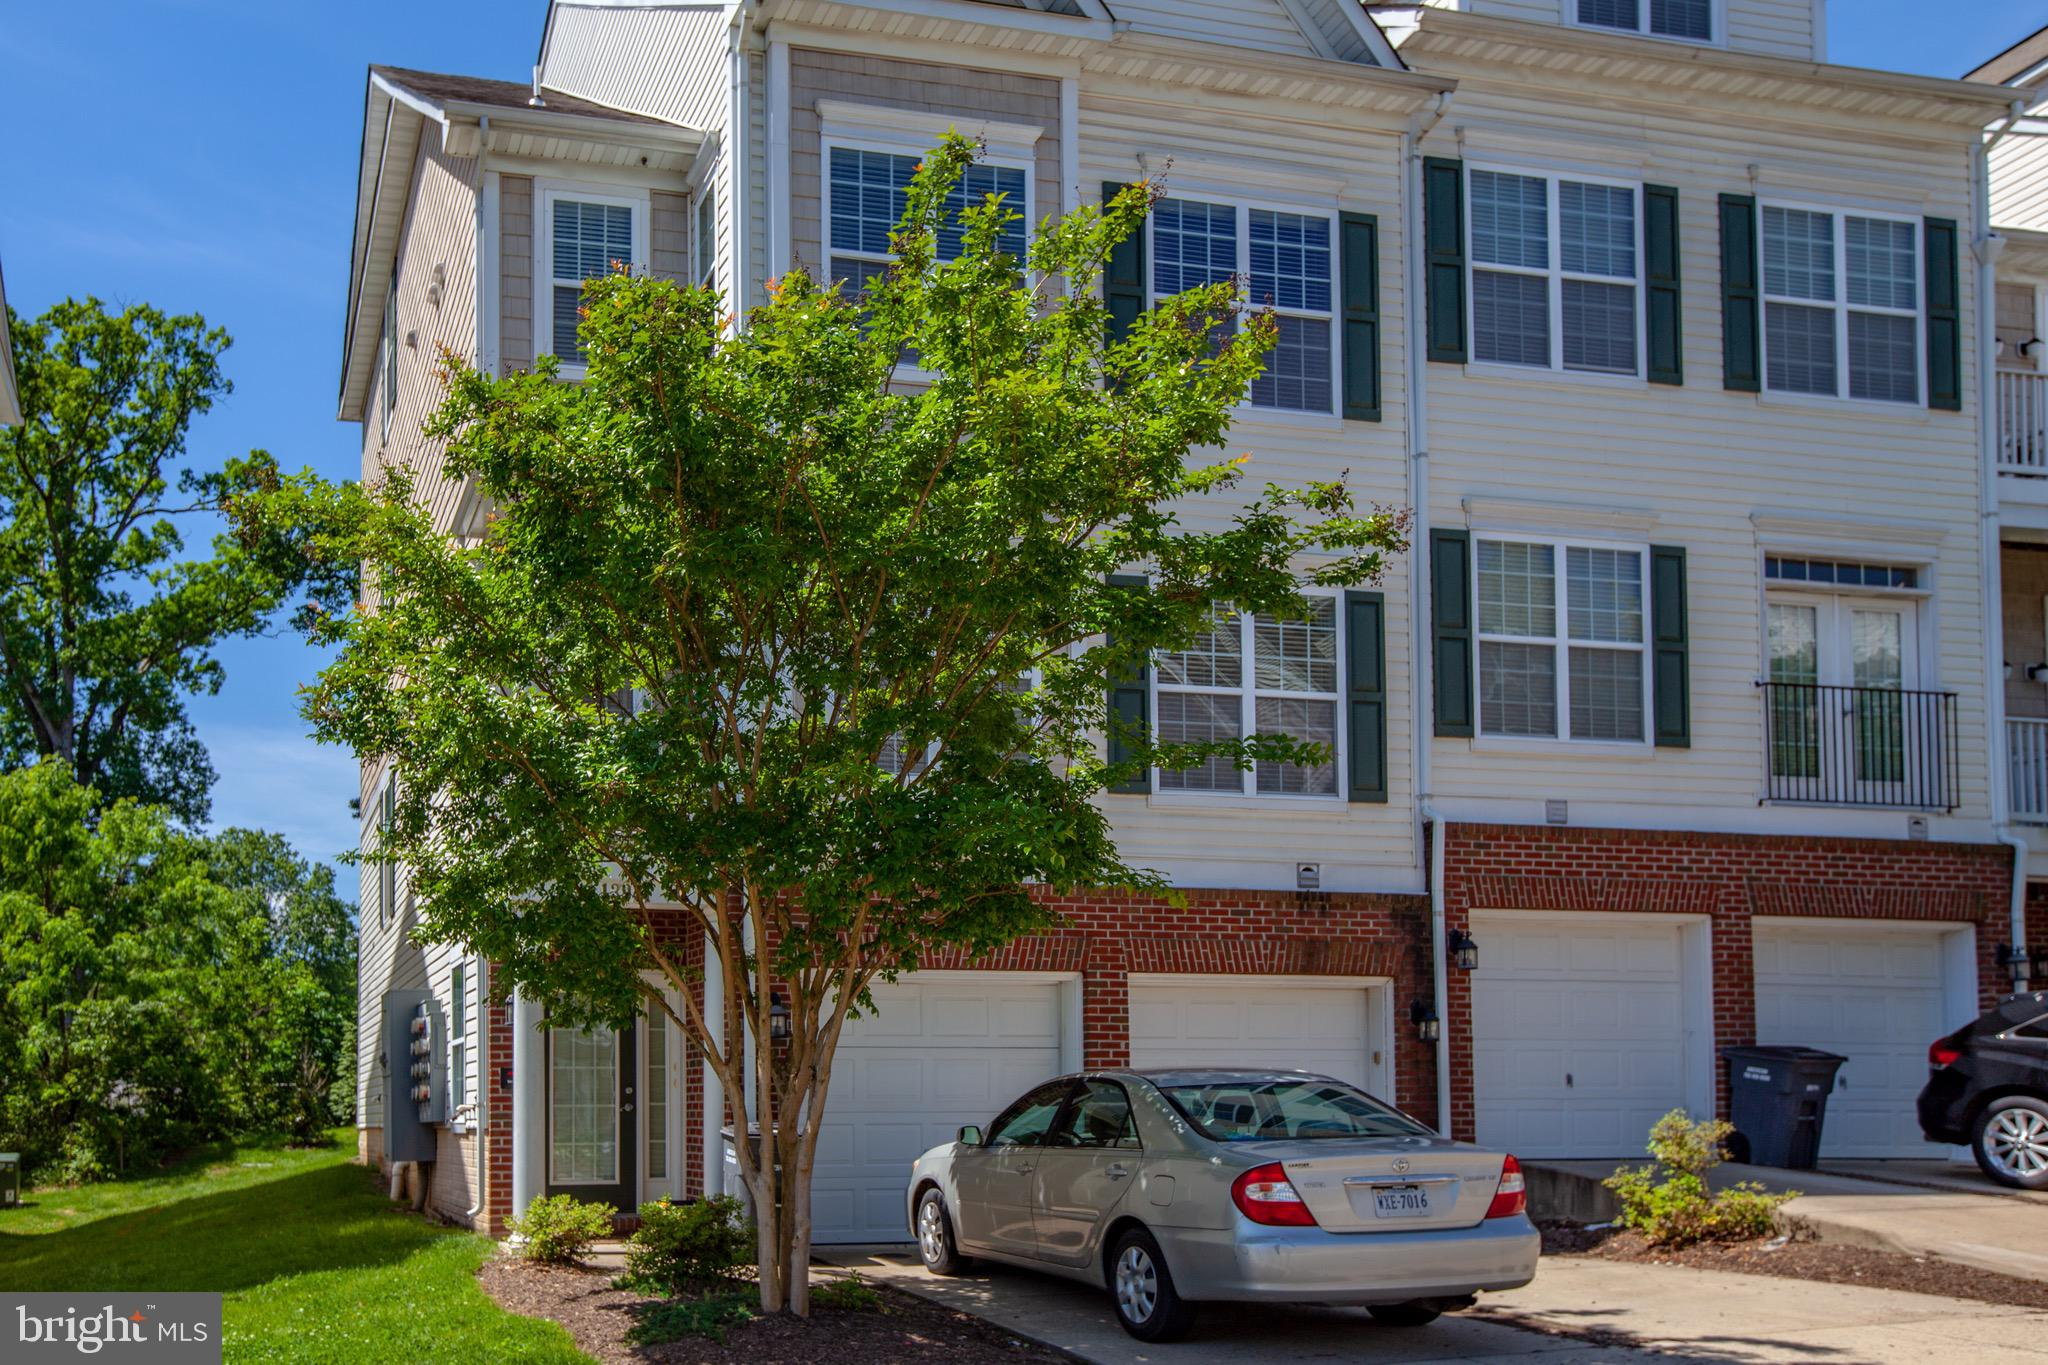 LOCATION, LOCATION, LOCATION - Easy access to I-95.  Freshly painted 2 level condo (end unit) with garage.  Large master bedroom with balcony.  New carpet in master.  Private deck off dining area. Come see if owning this condo may be better than paying rent.